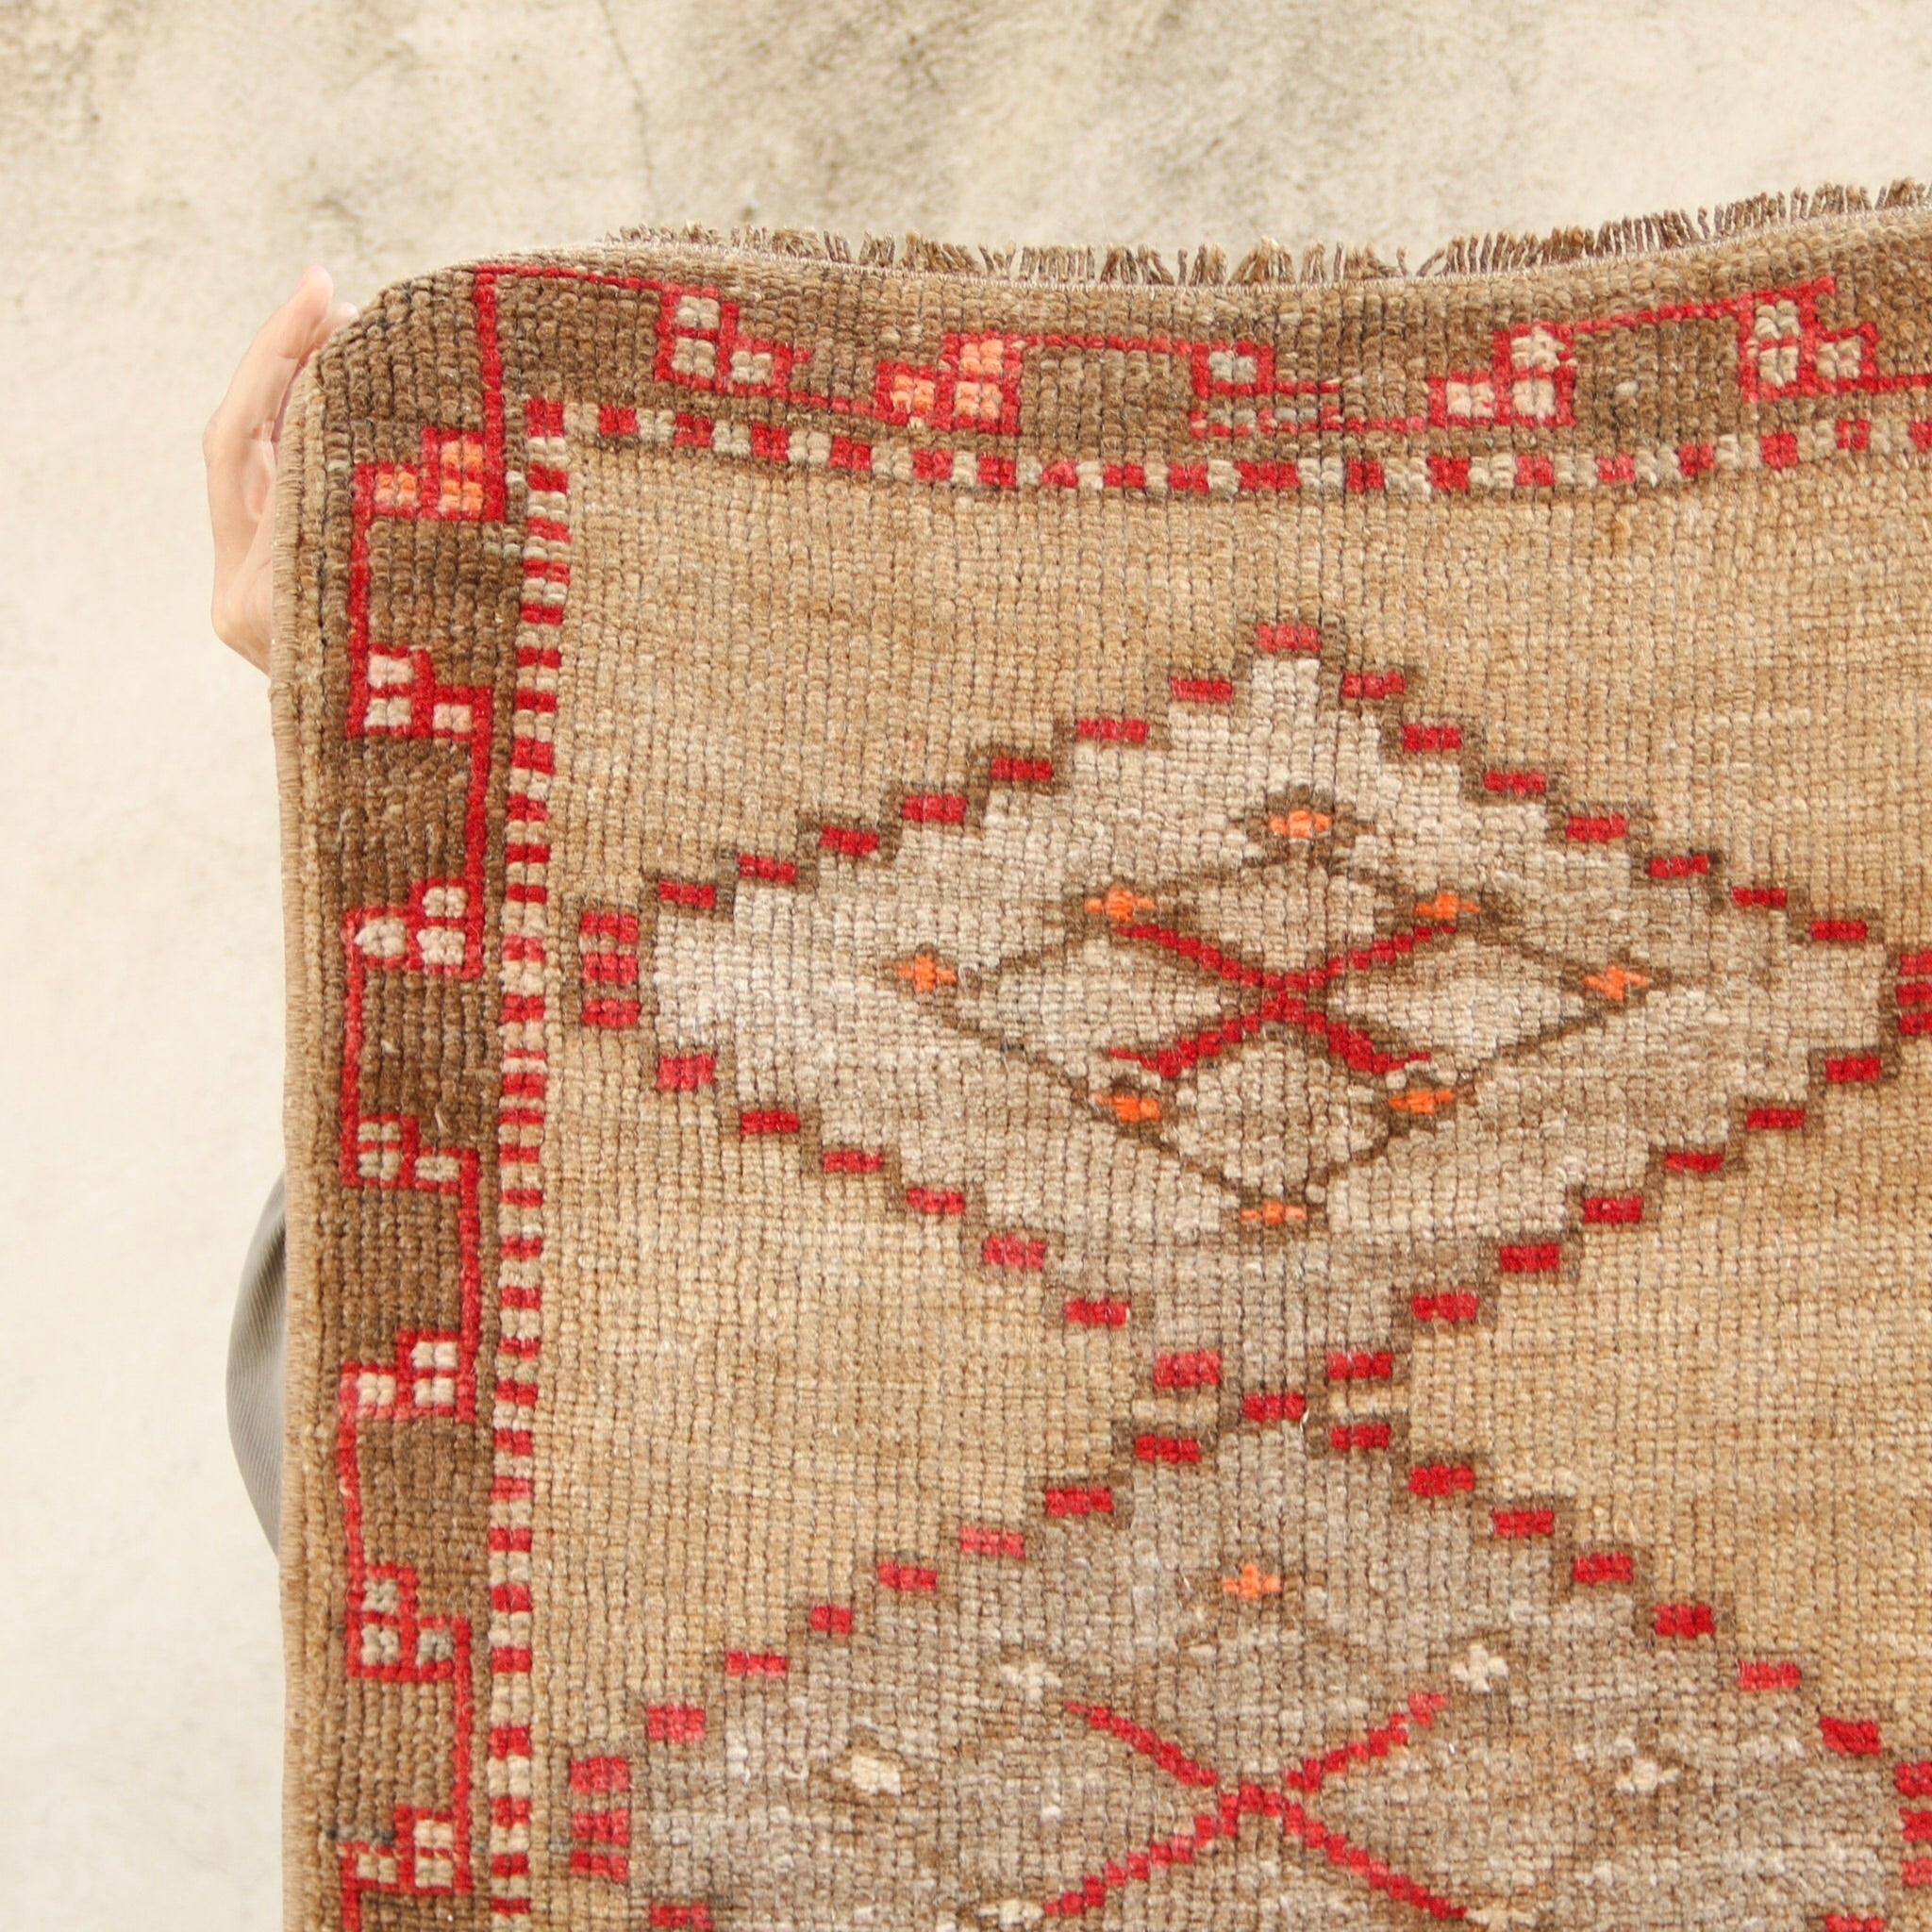 This vintage Turkish rug is a beautiful neutral with pink and red accents. Great for entryways, bathrooms, kitchens and layering.